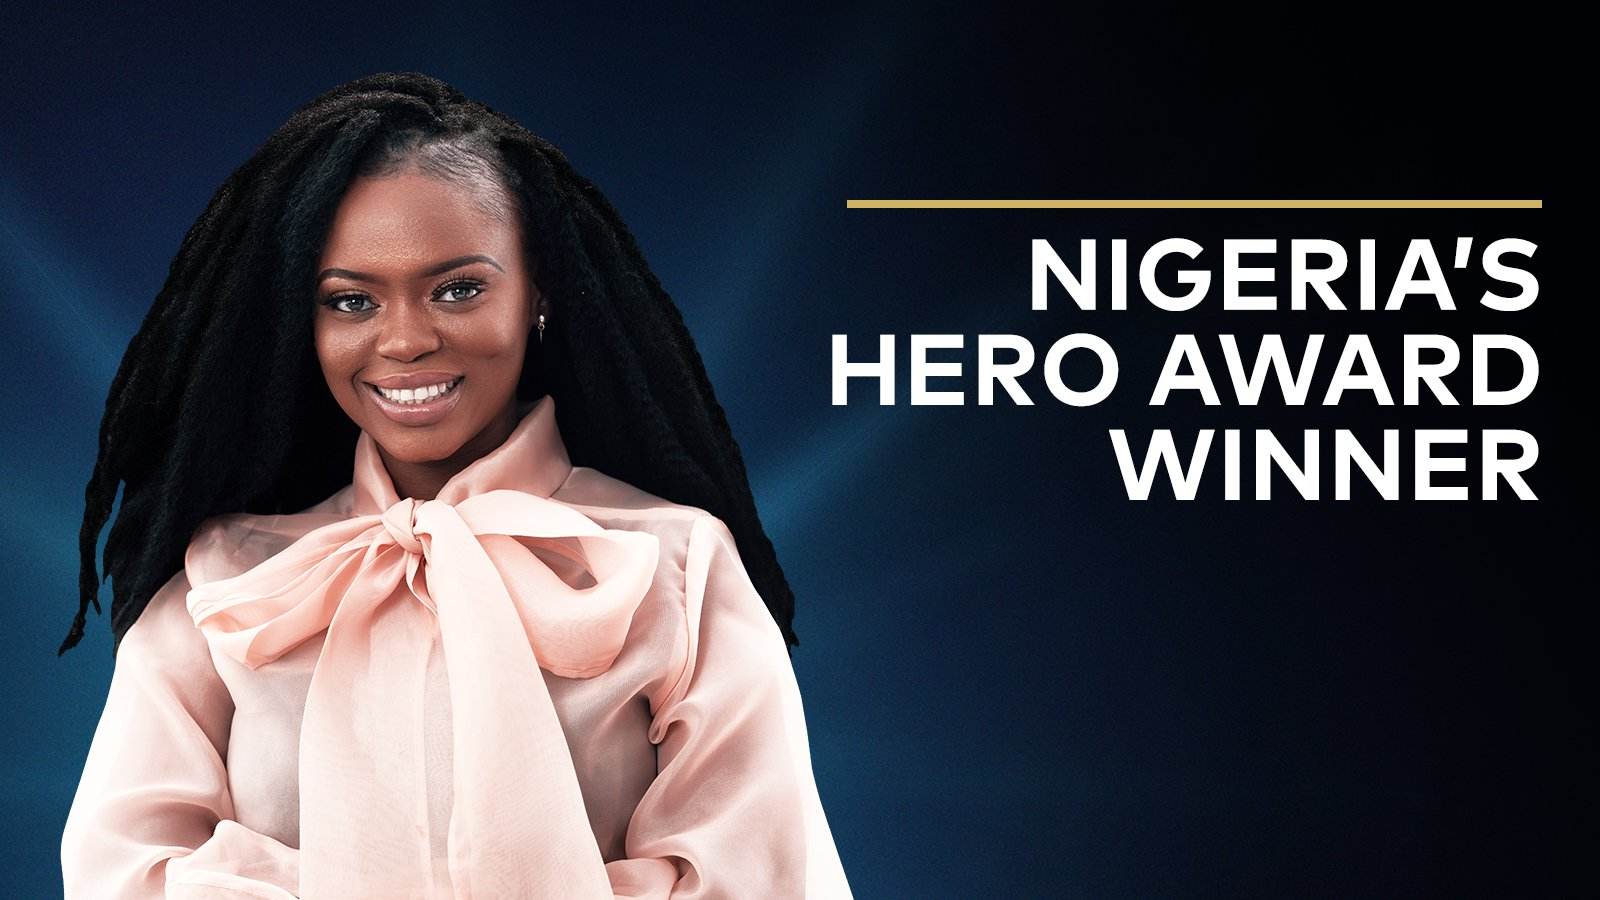 Nigeria's Hero Award